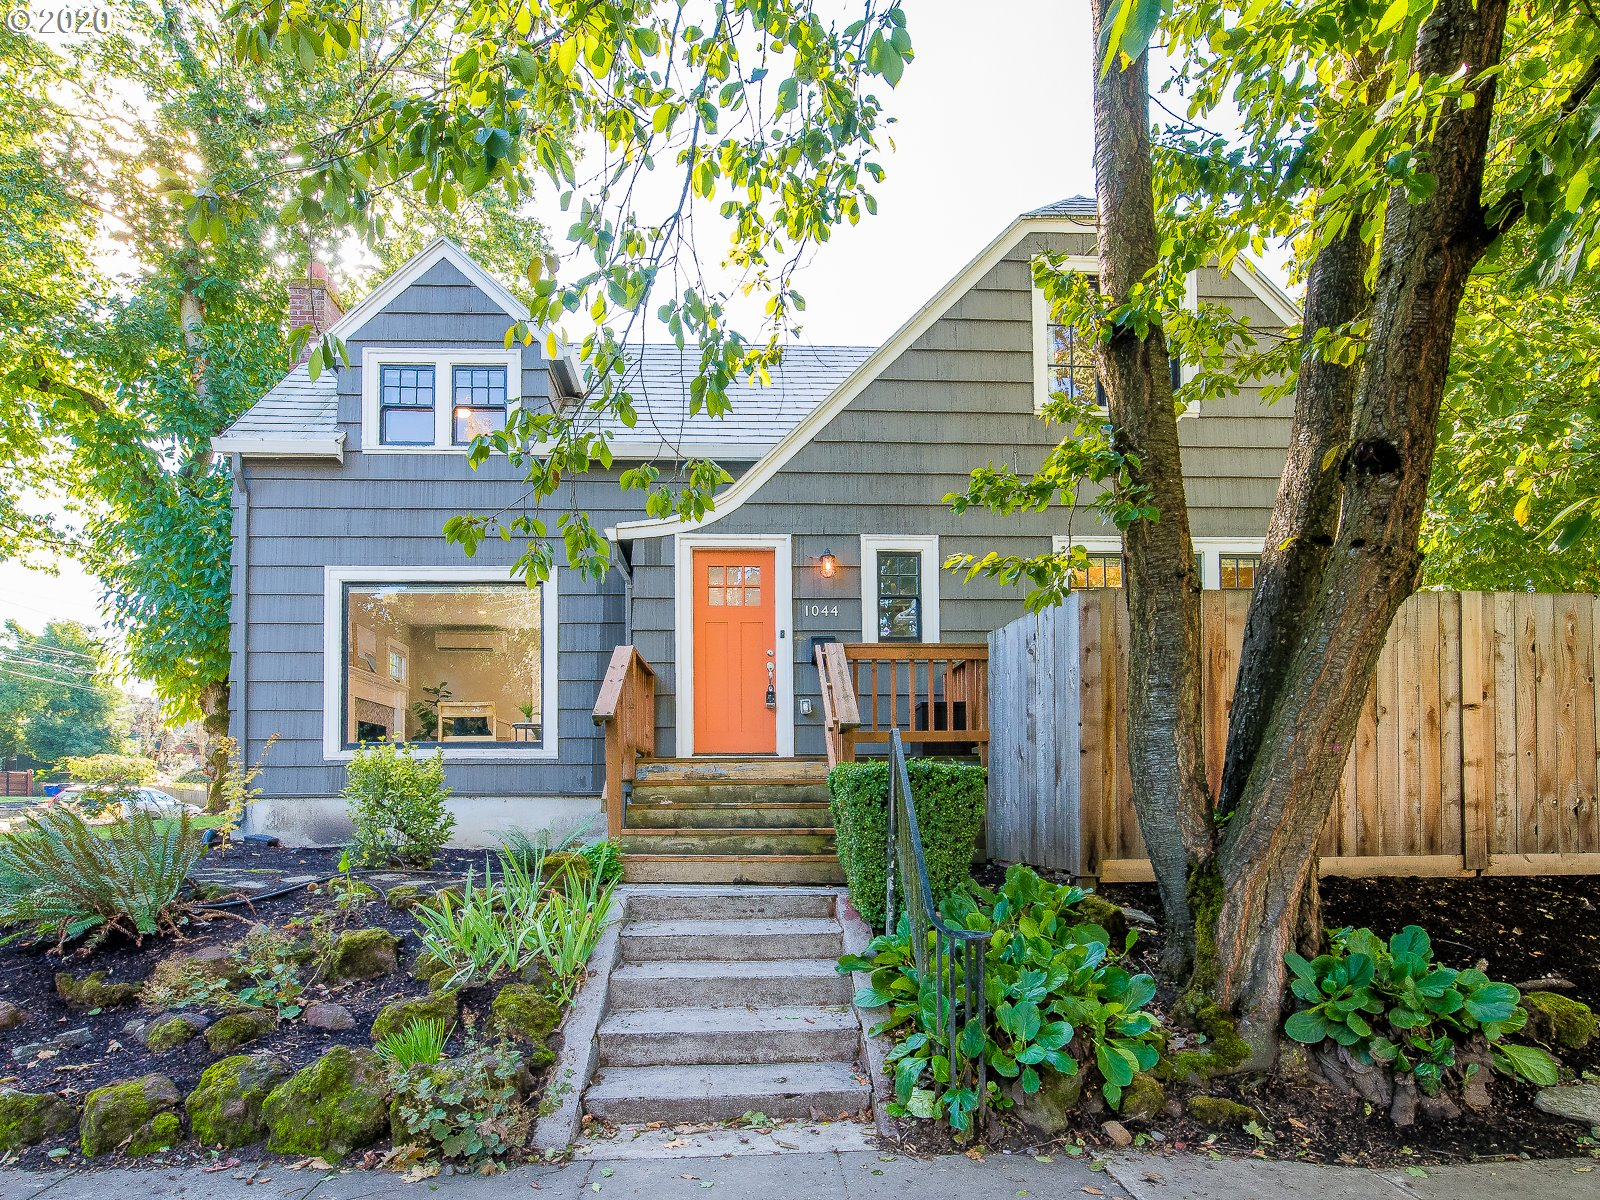 Charming Irvington three bedroom plus ADU! Located on a corner lot with Irving Park for a next door neighbor, this home has been lovingly restored over the last few years. Home has updated electrical, plumbing, new heat pumps, new detached garage with power (including high voltage power for EV charging), and much more! Basement ADU has large window for loads of natural light and polished concrete floors. Don't miss this unique home that's going to check a lot of boxes!